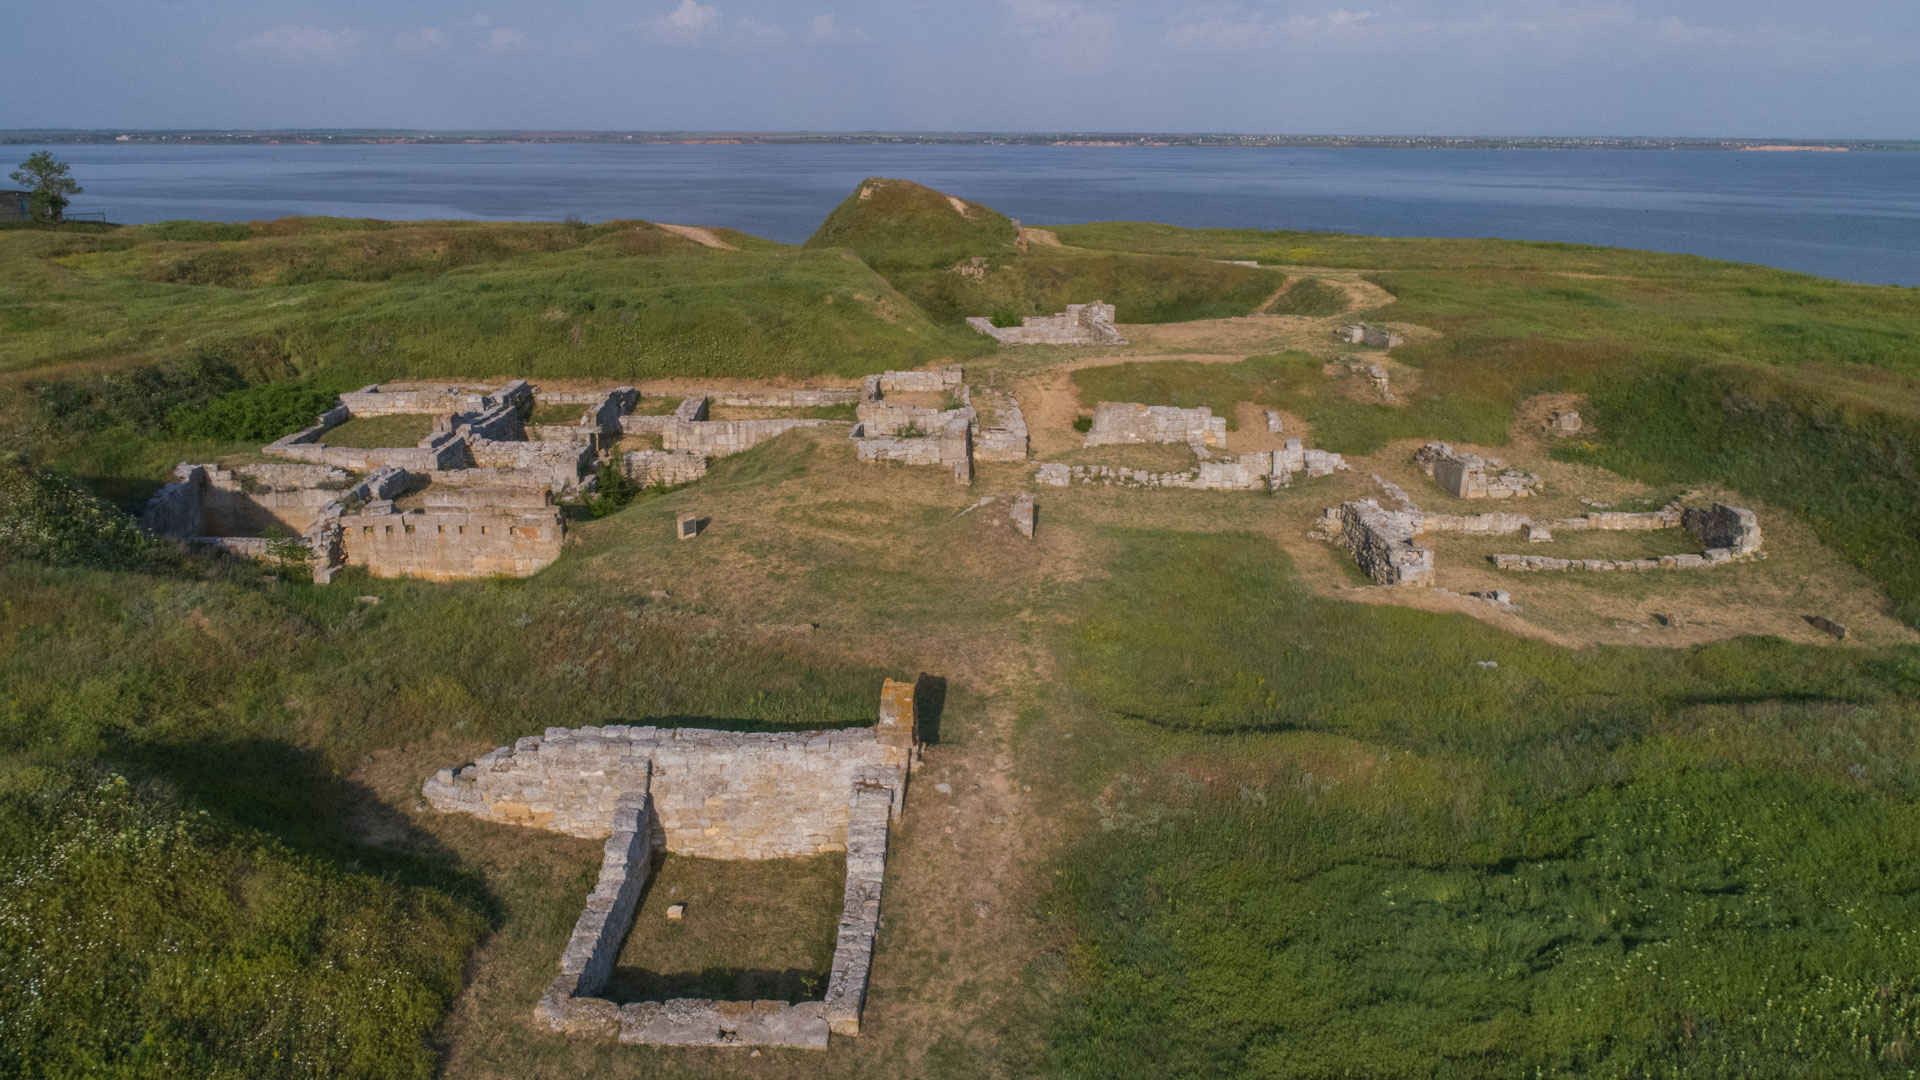 Olbia: The largest ancient Greek settlement on the Black Sea coast